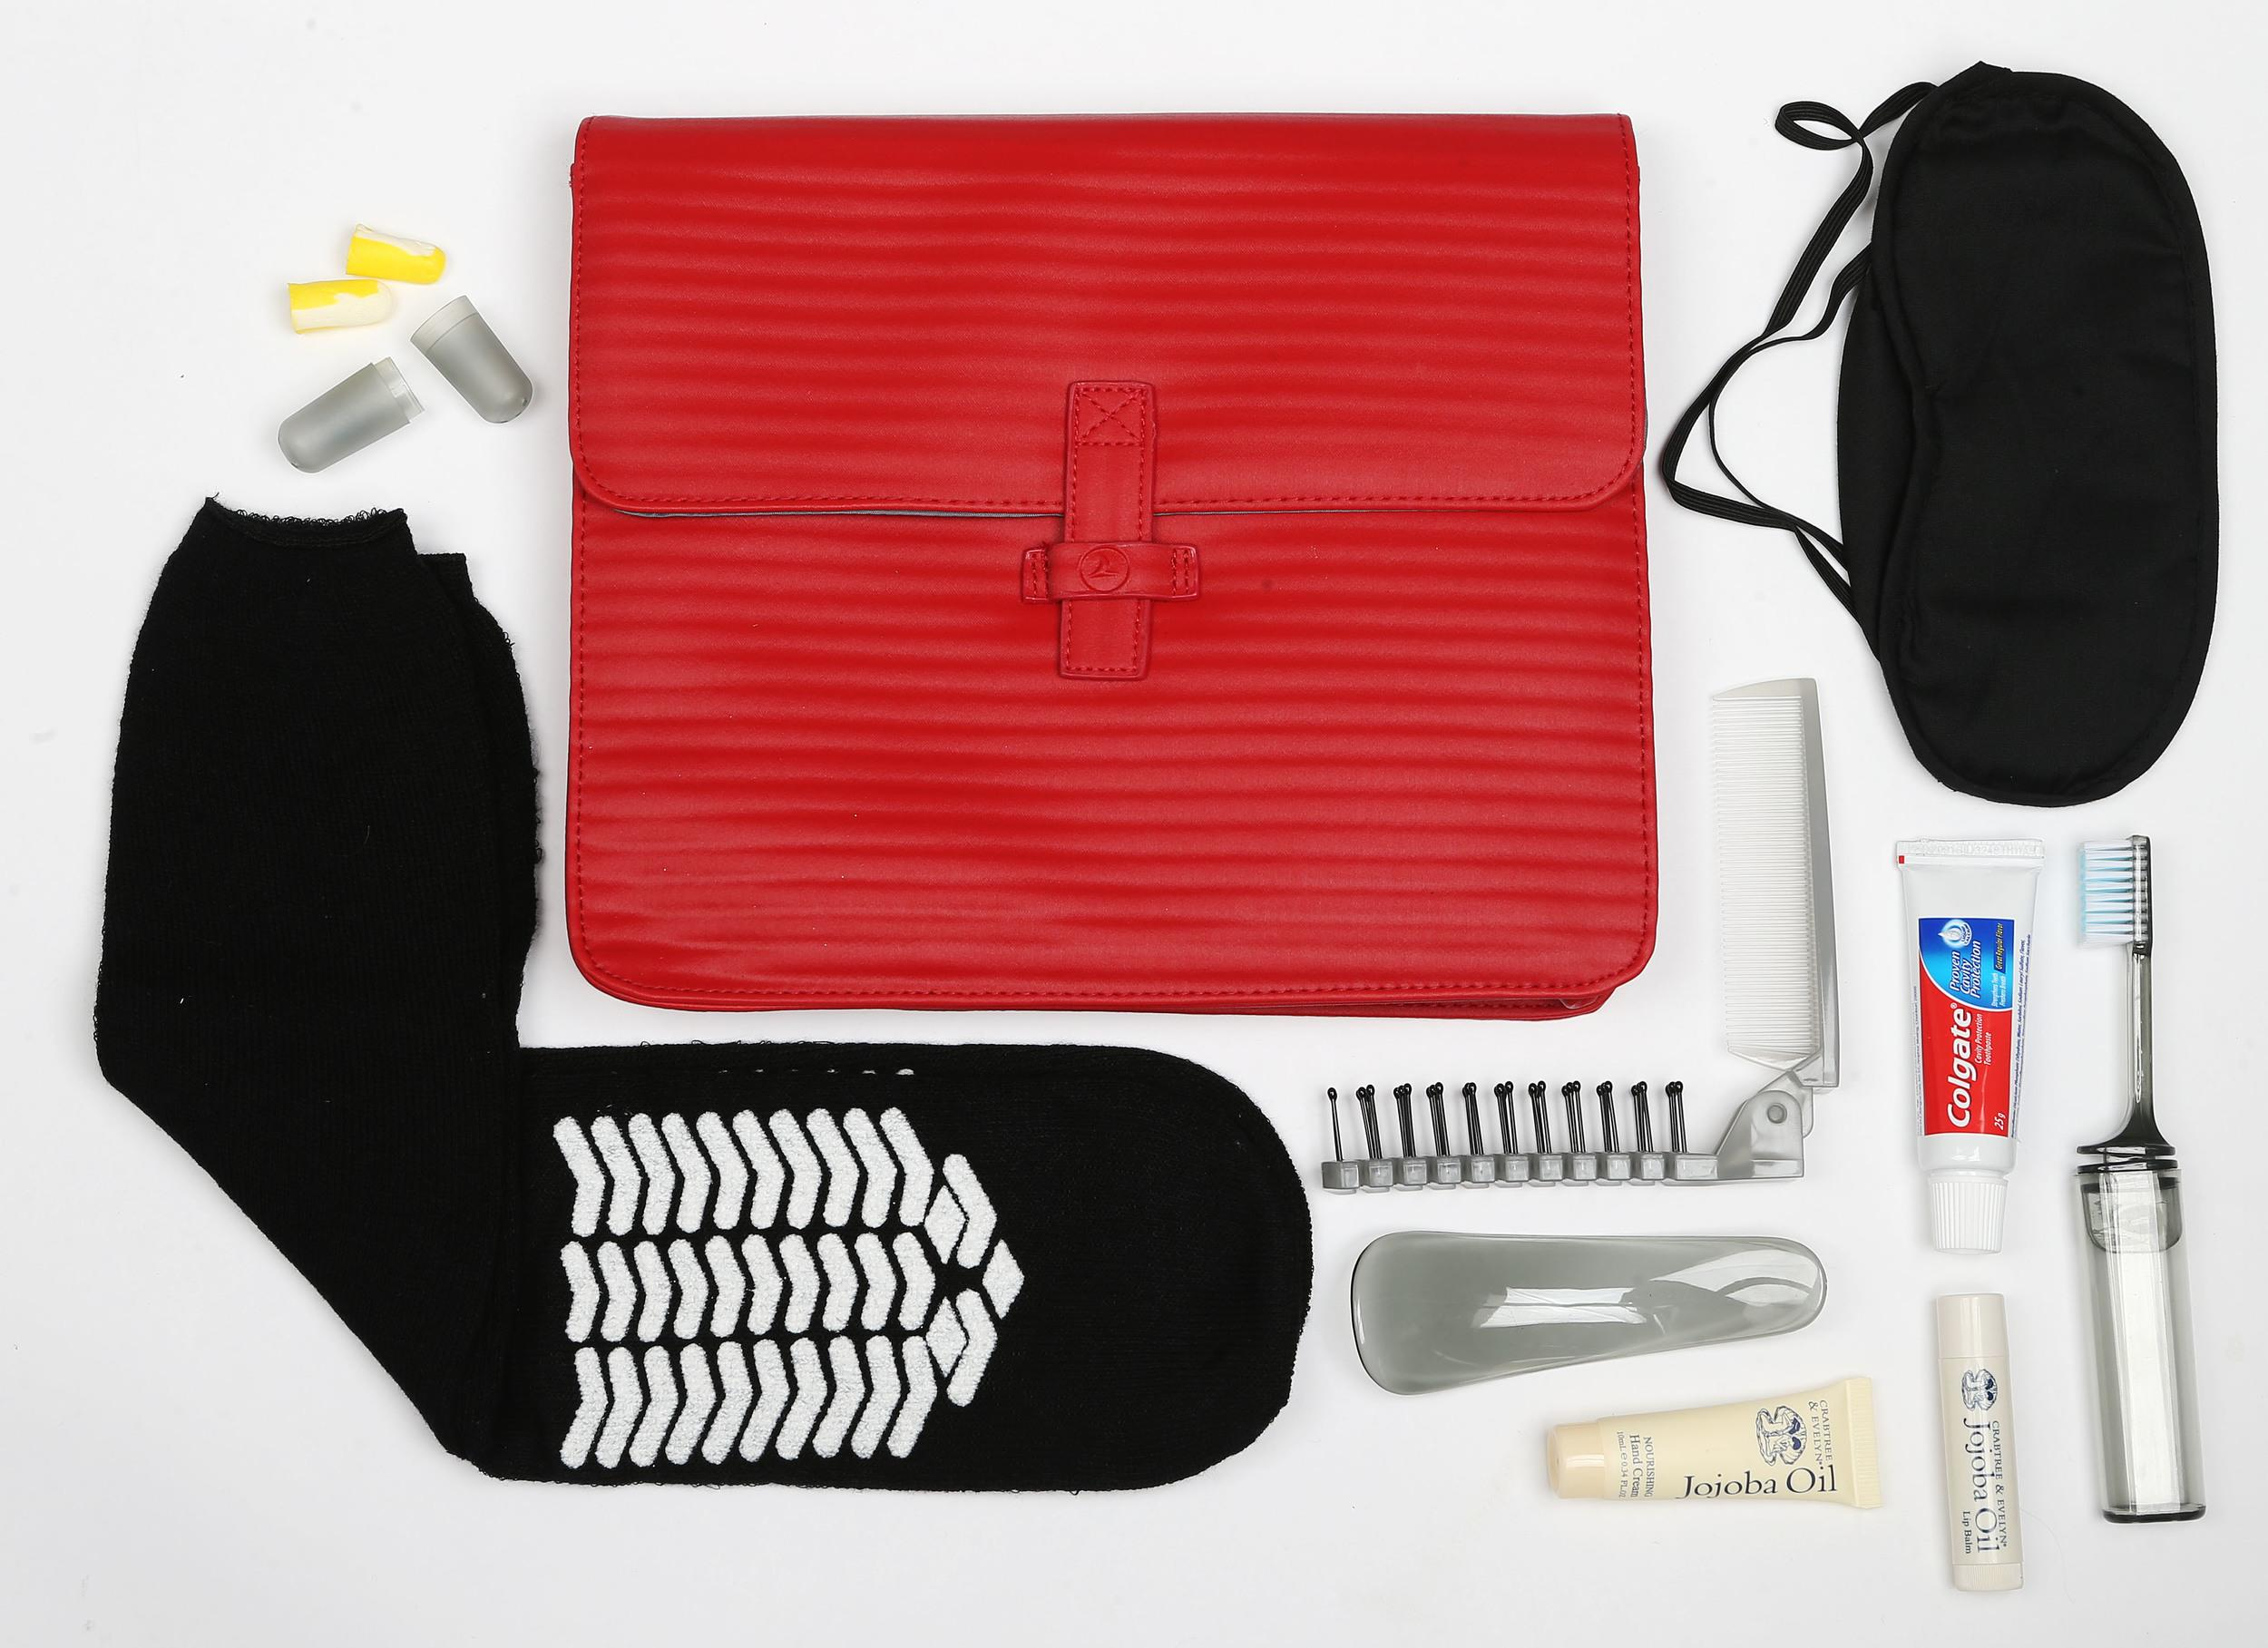 """<p><strong>What do you get?</strong> Turkish Airlines' Business-Class offering exudes style: Non-slip socks, eye mask, stickers – """"Please do not disturb"""" and """"Please wake me for meal"""", Crabtree & Evelyn Jojoba Oil nourishing hand cream and lip balm, foldable brush/comb, toothbrush, toothpaste, ear plugs, shoe horn<br /> <strong>Best bit of the kit?</strong> The bag. It's a bright letterbox-red envelope of a bag.</p>"""